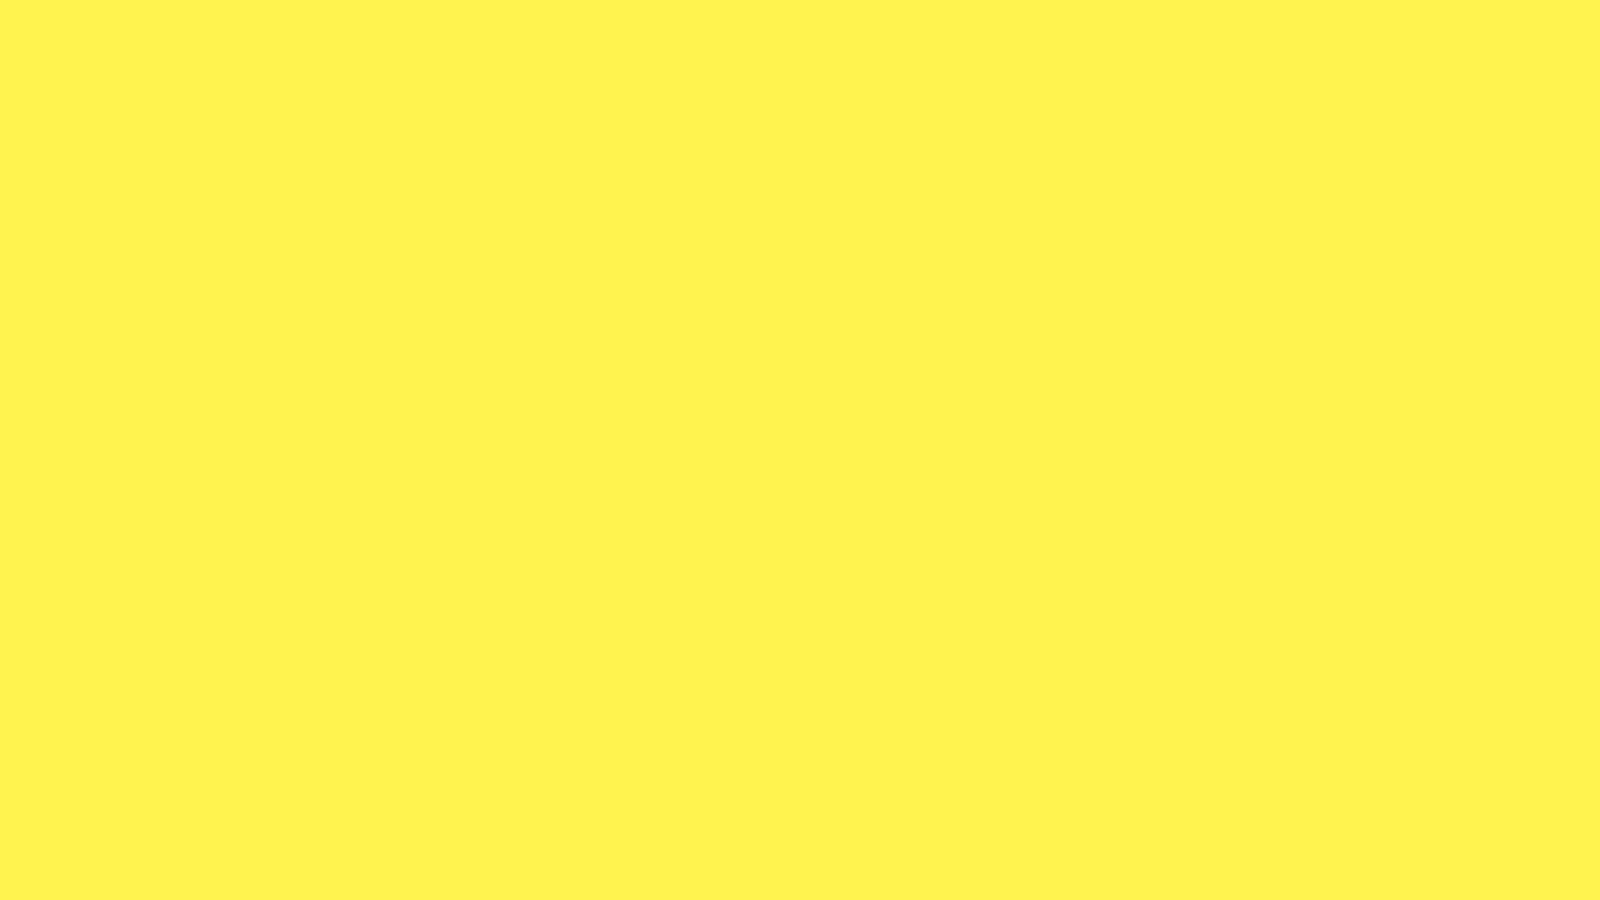 1600x900 Lemon Yellow Solid Color Background